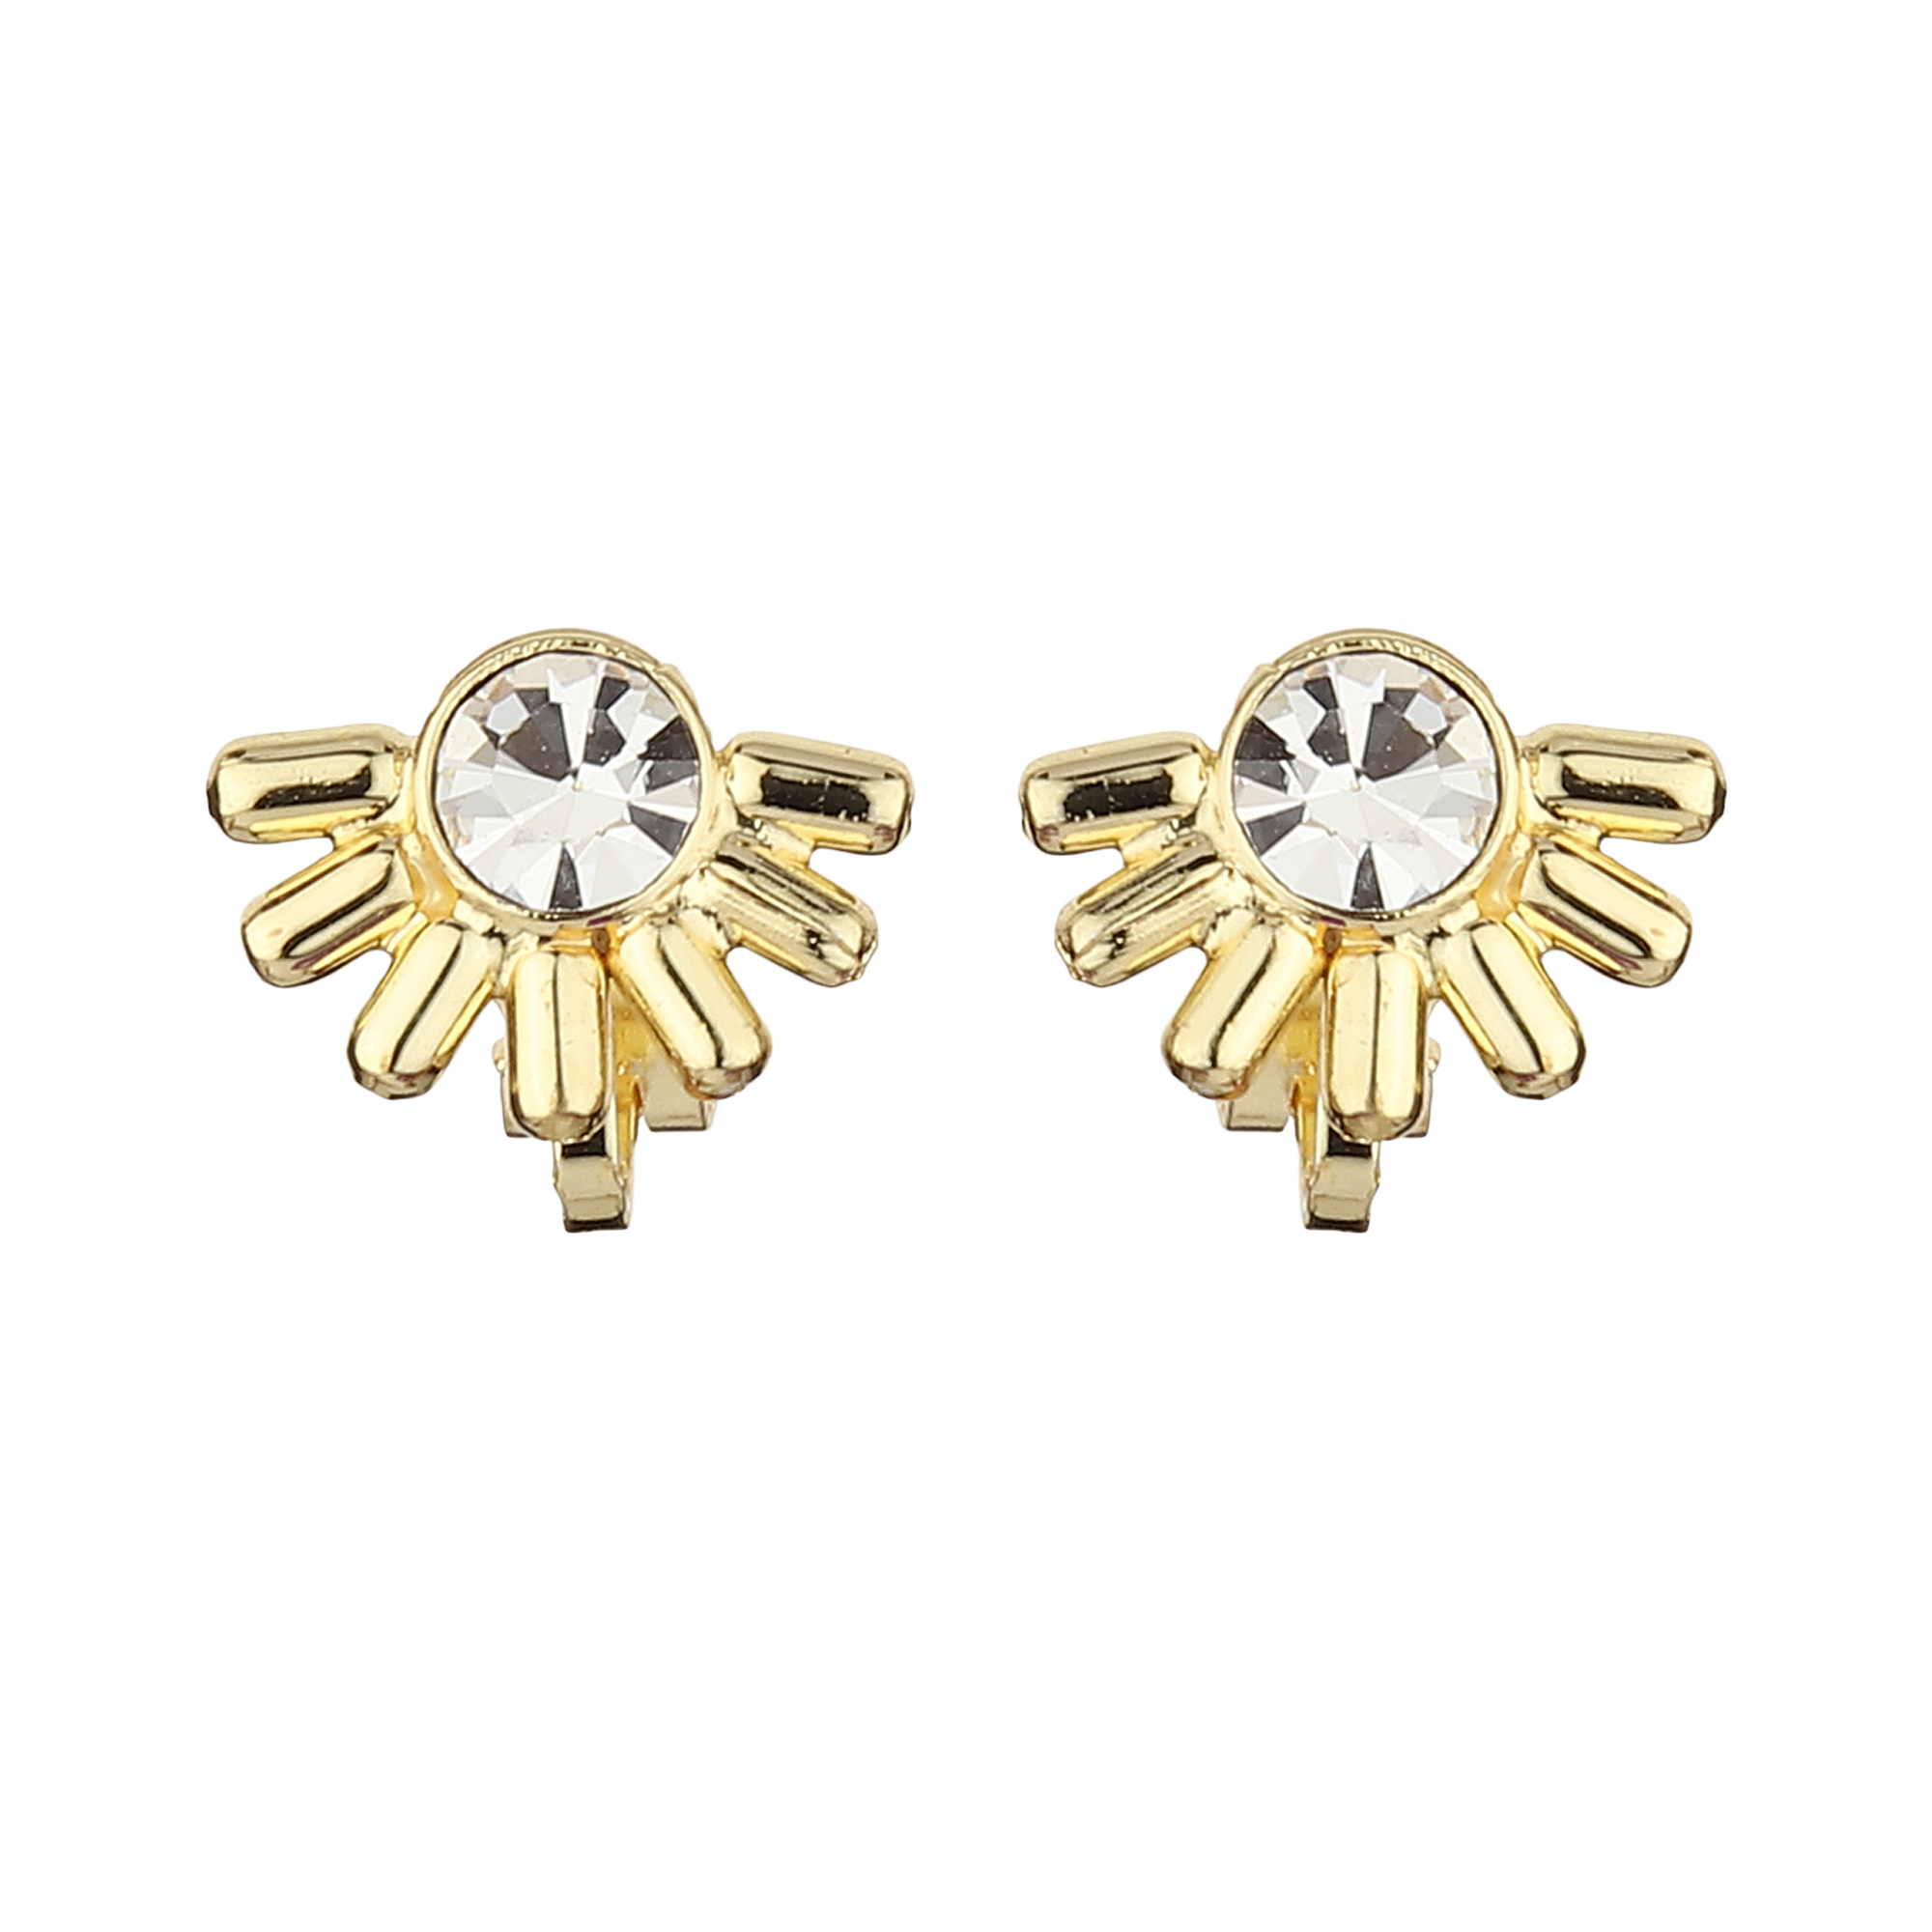 FirstBlush | FirstBlush Clip On Earrings for Non Piearced Ears for Women & Girls; Plating: Gold; Color: Gold; Size: 10 X 15mm; Wt.: 3gm. (MIEC104M108)